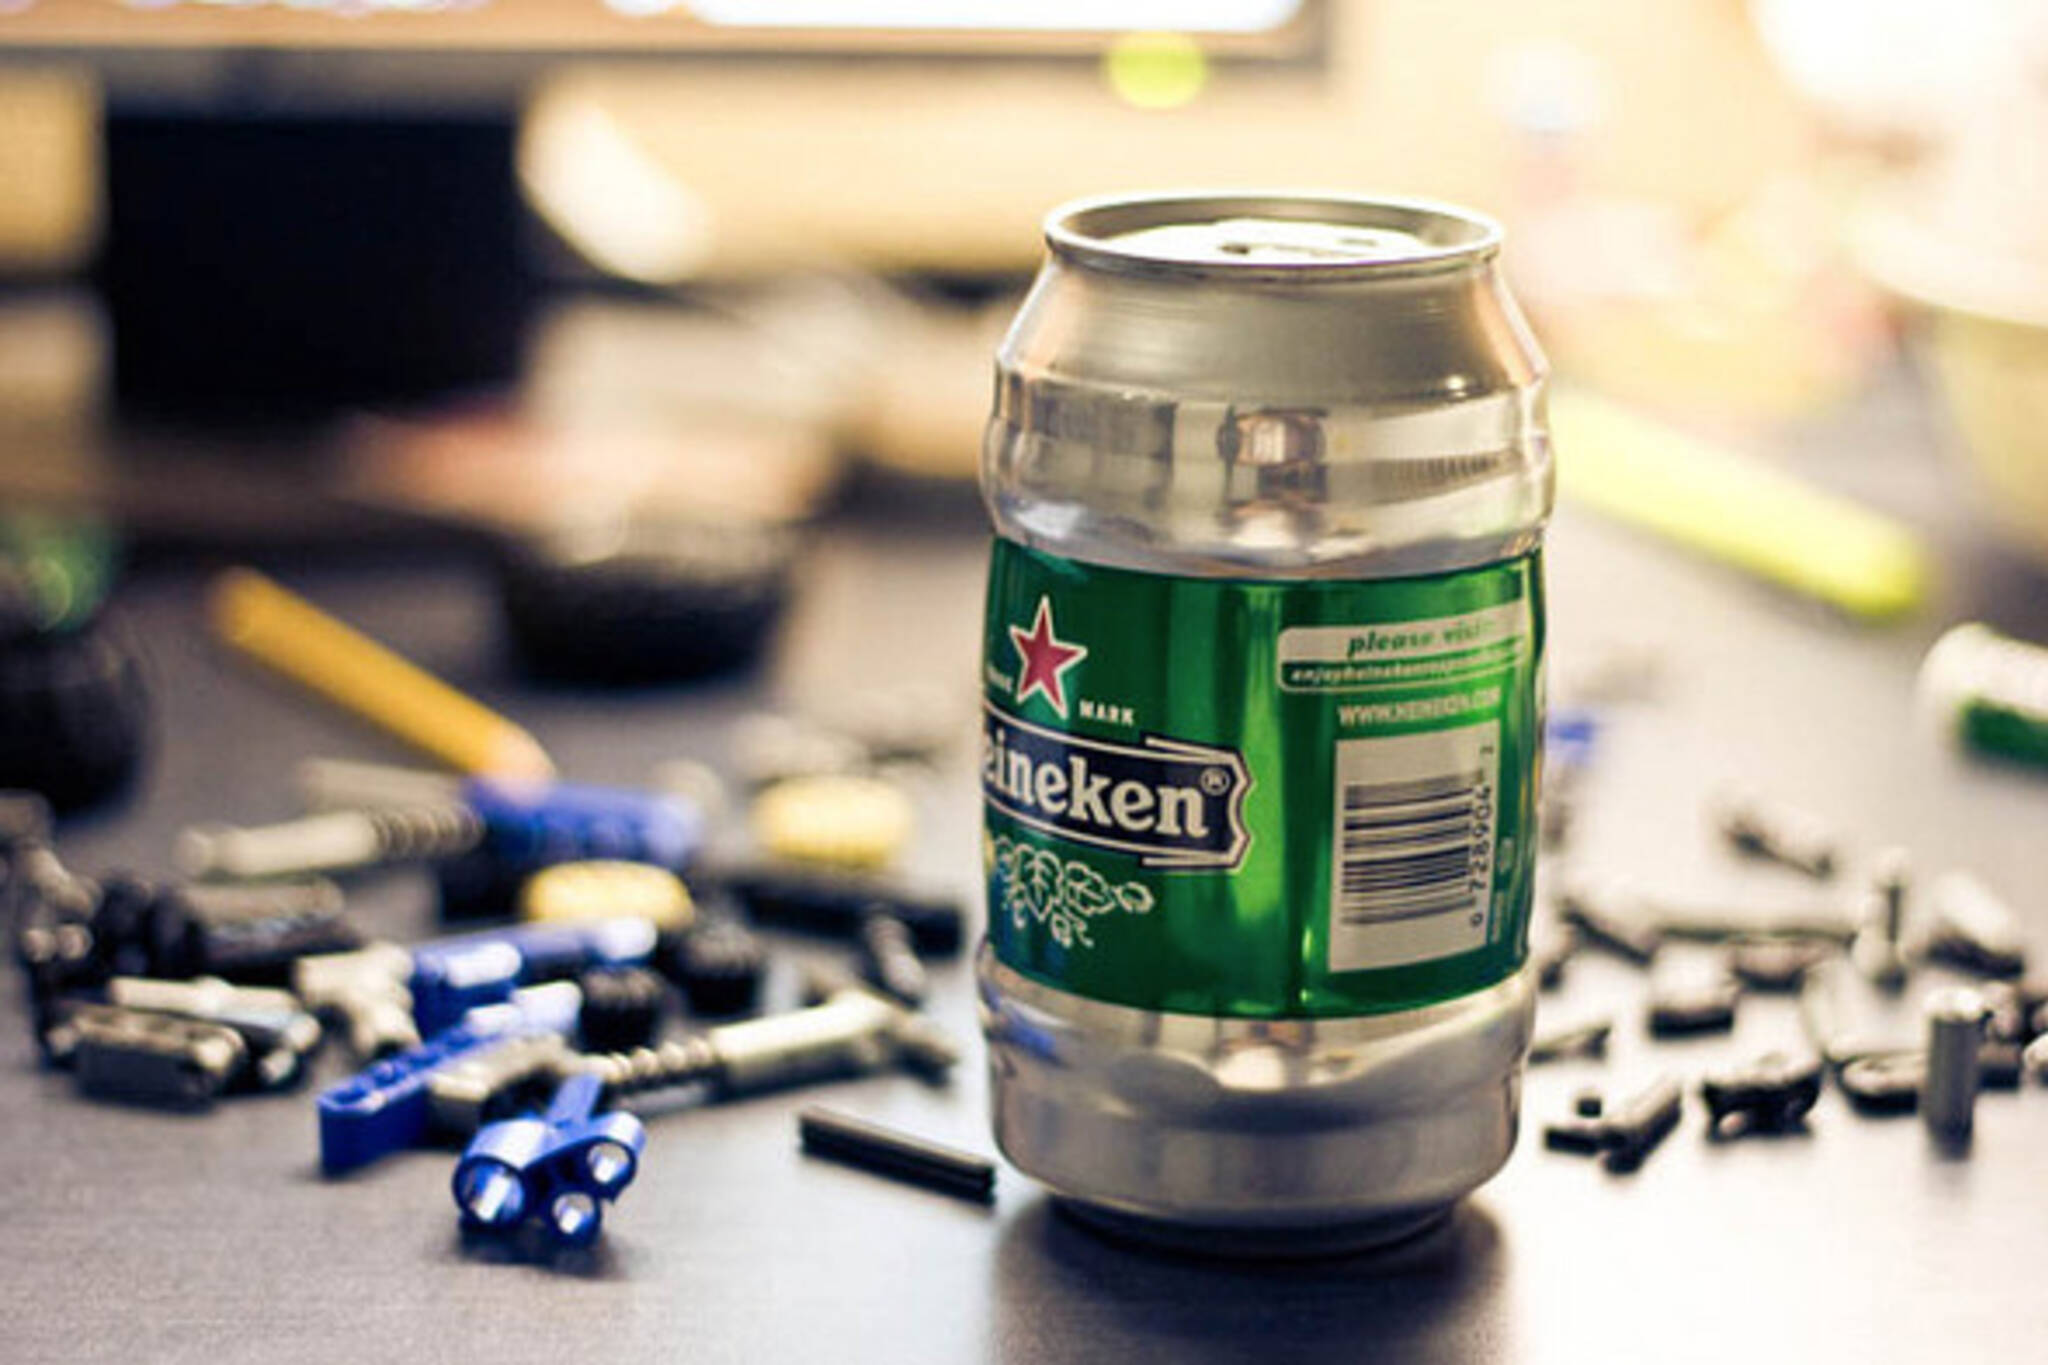 Lego and Lagers